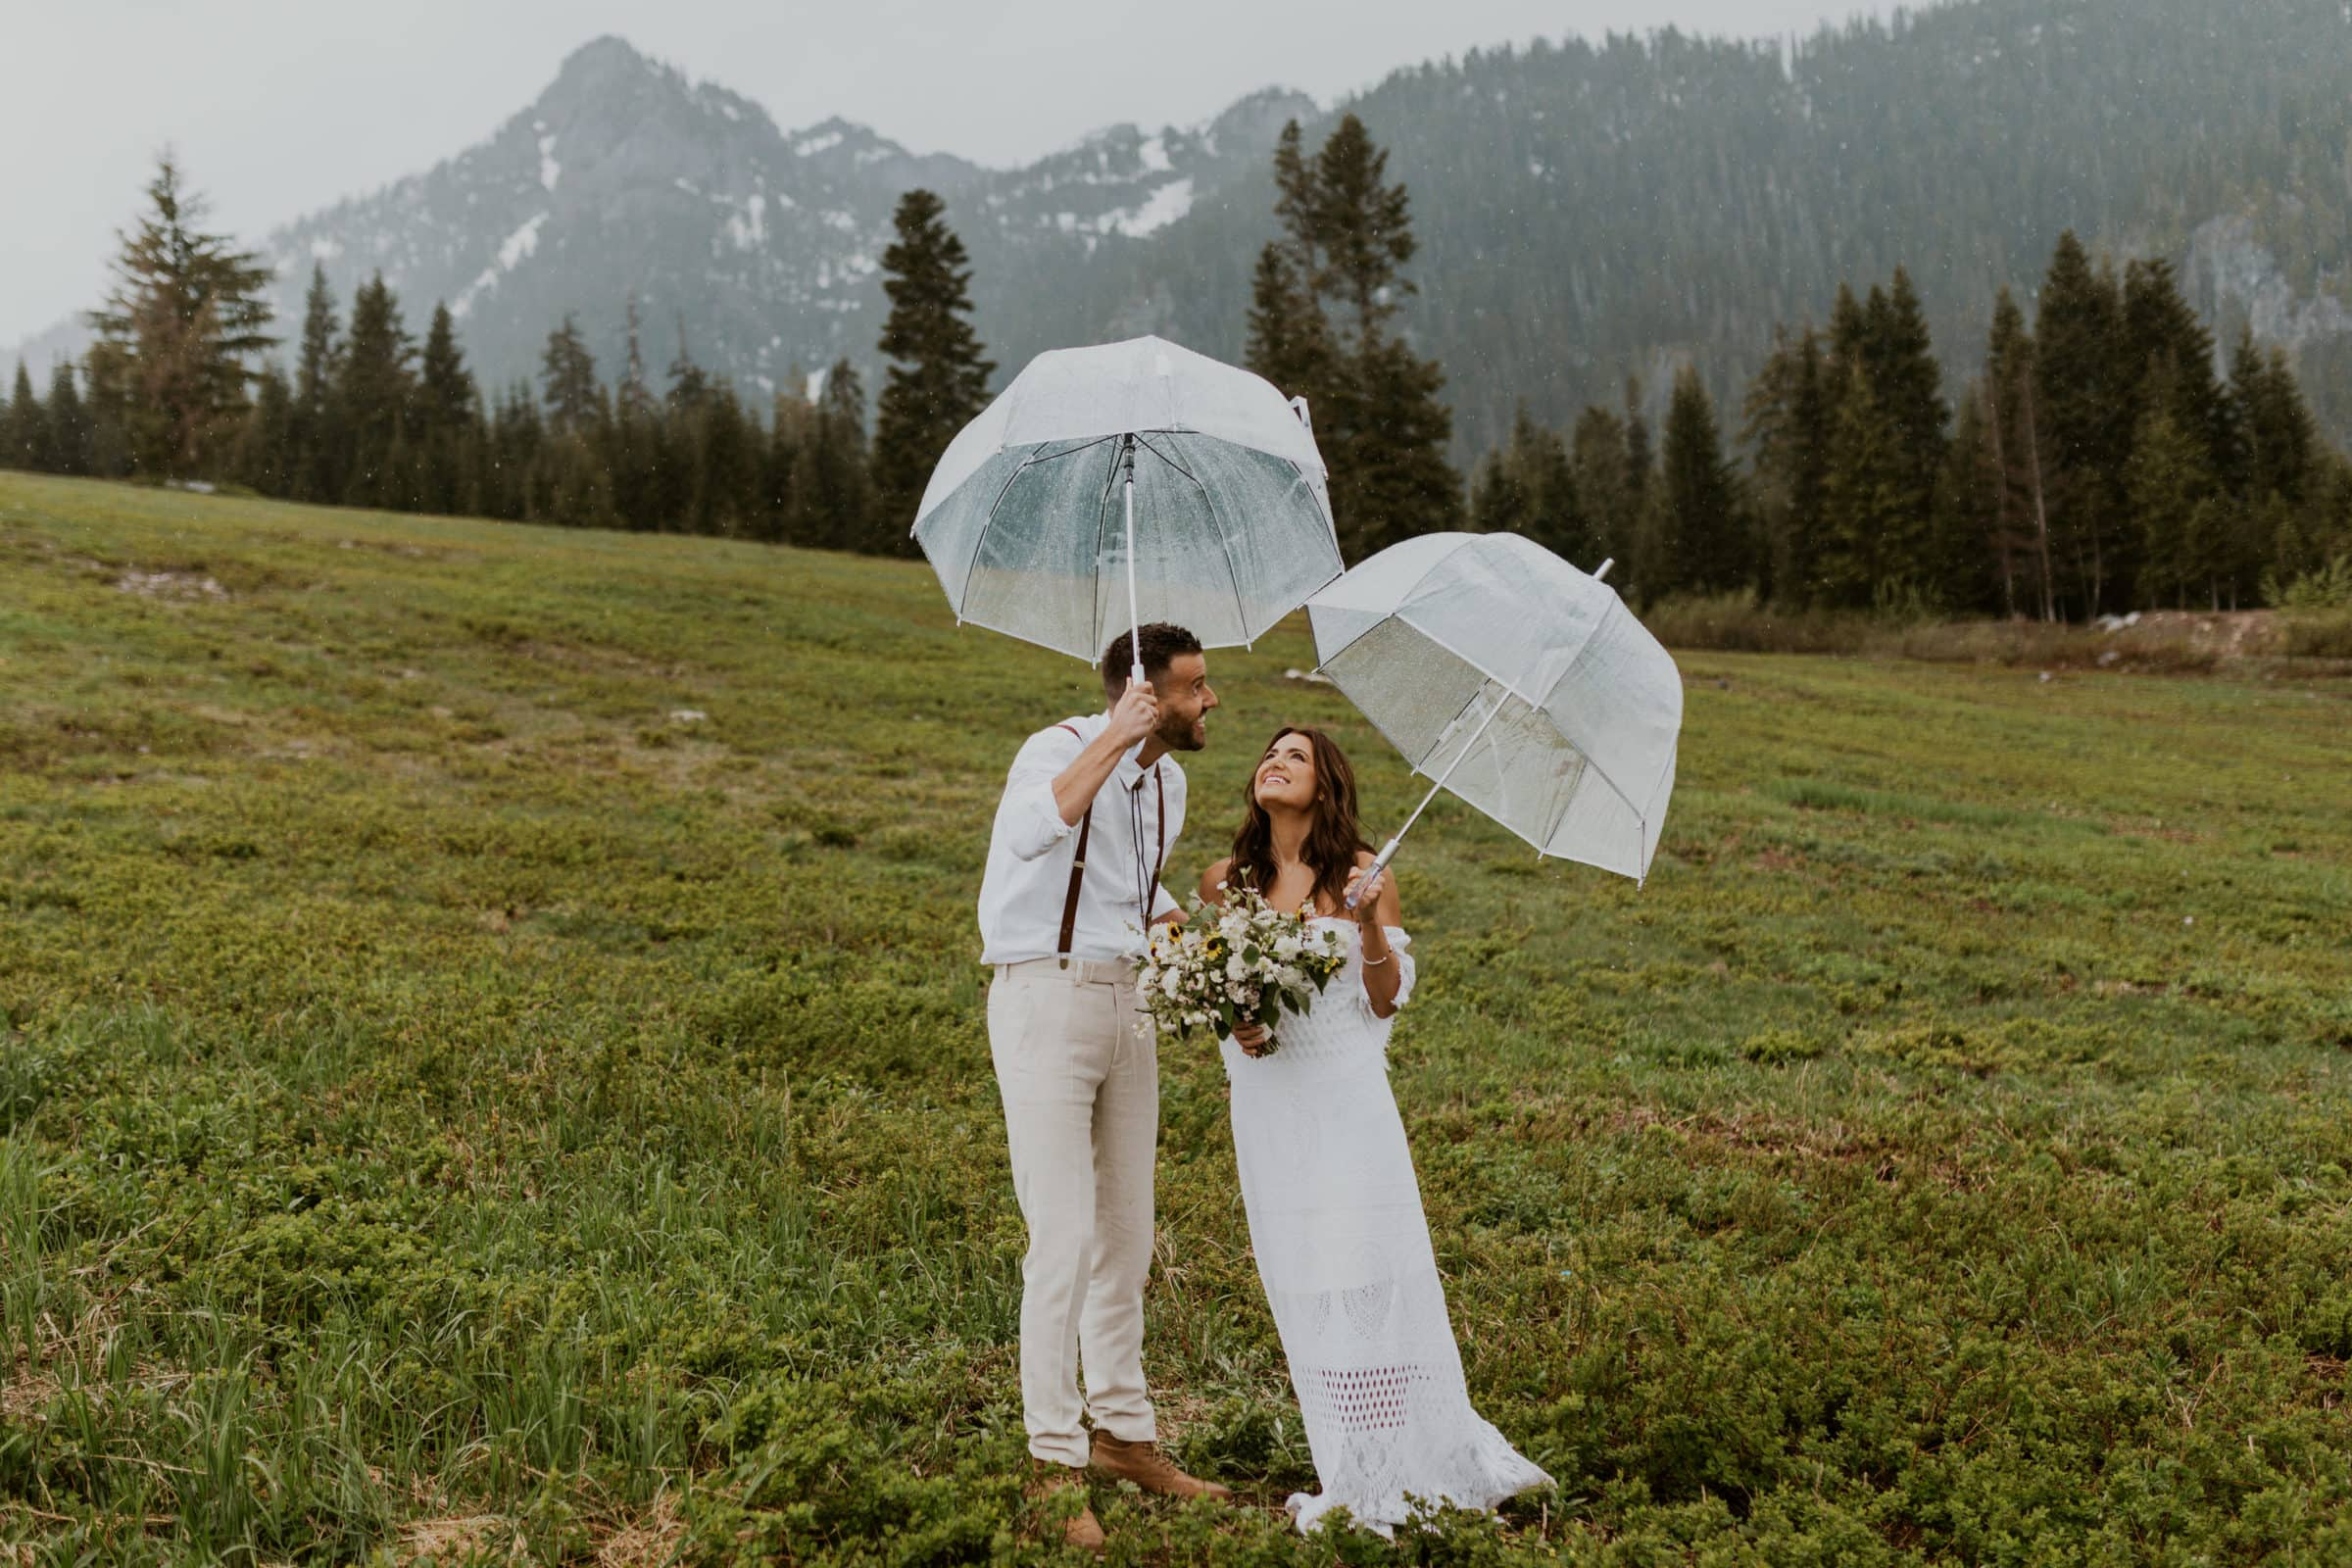 A bride and groom holding clear umbrellas and smiling with mountains in the back in Washington State.